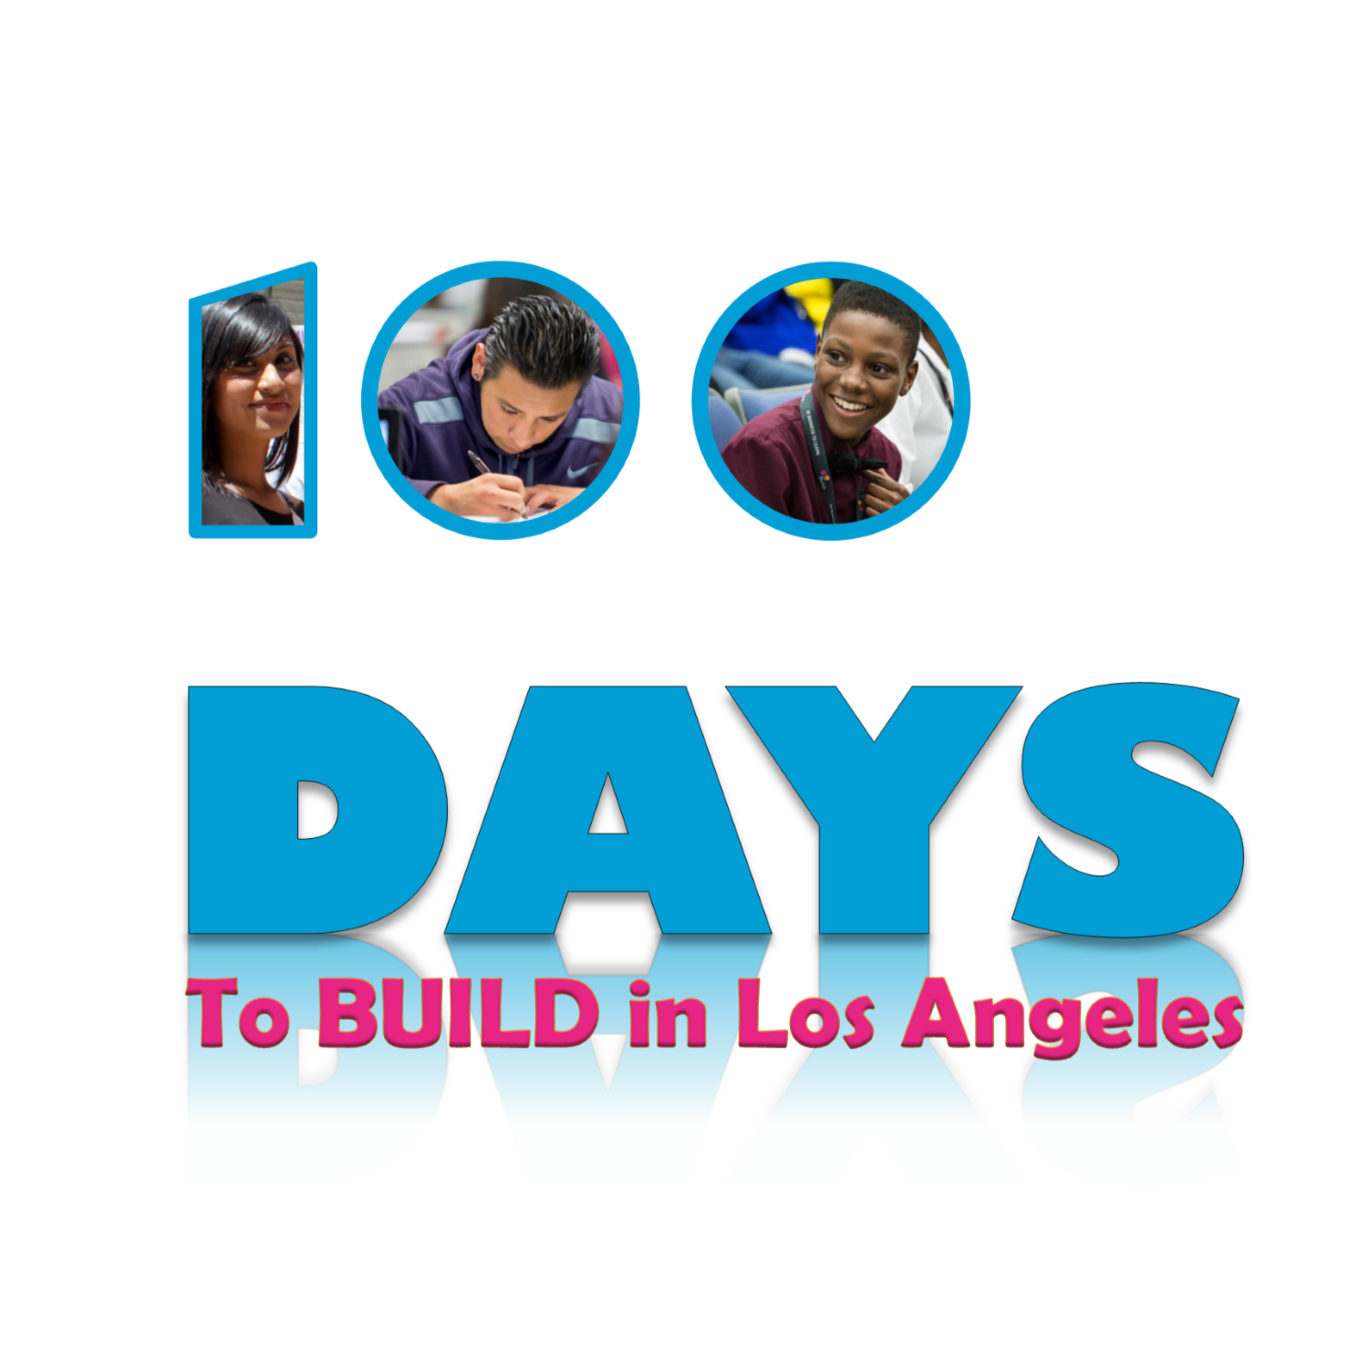 Support BUILD Los Angeles as we launch! Photo